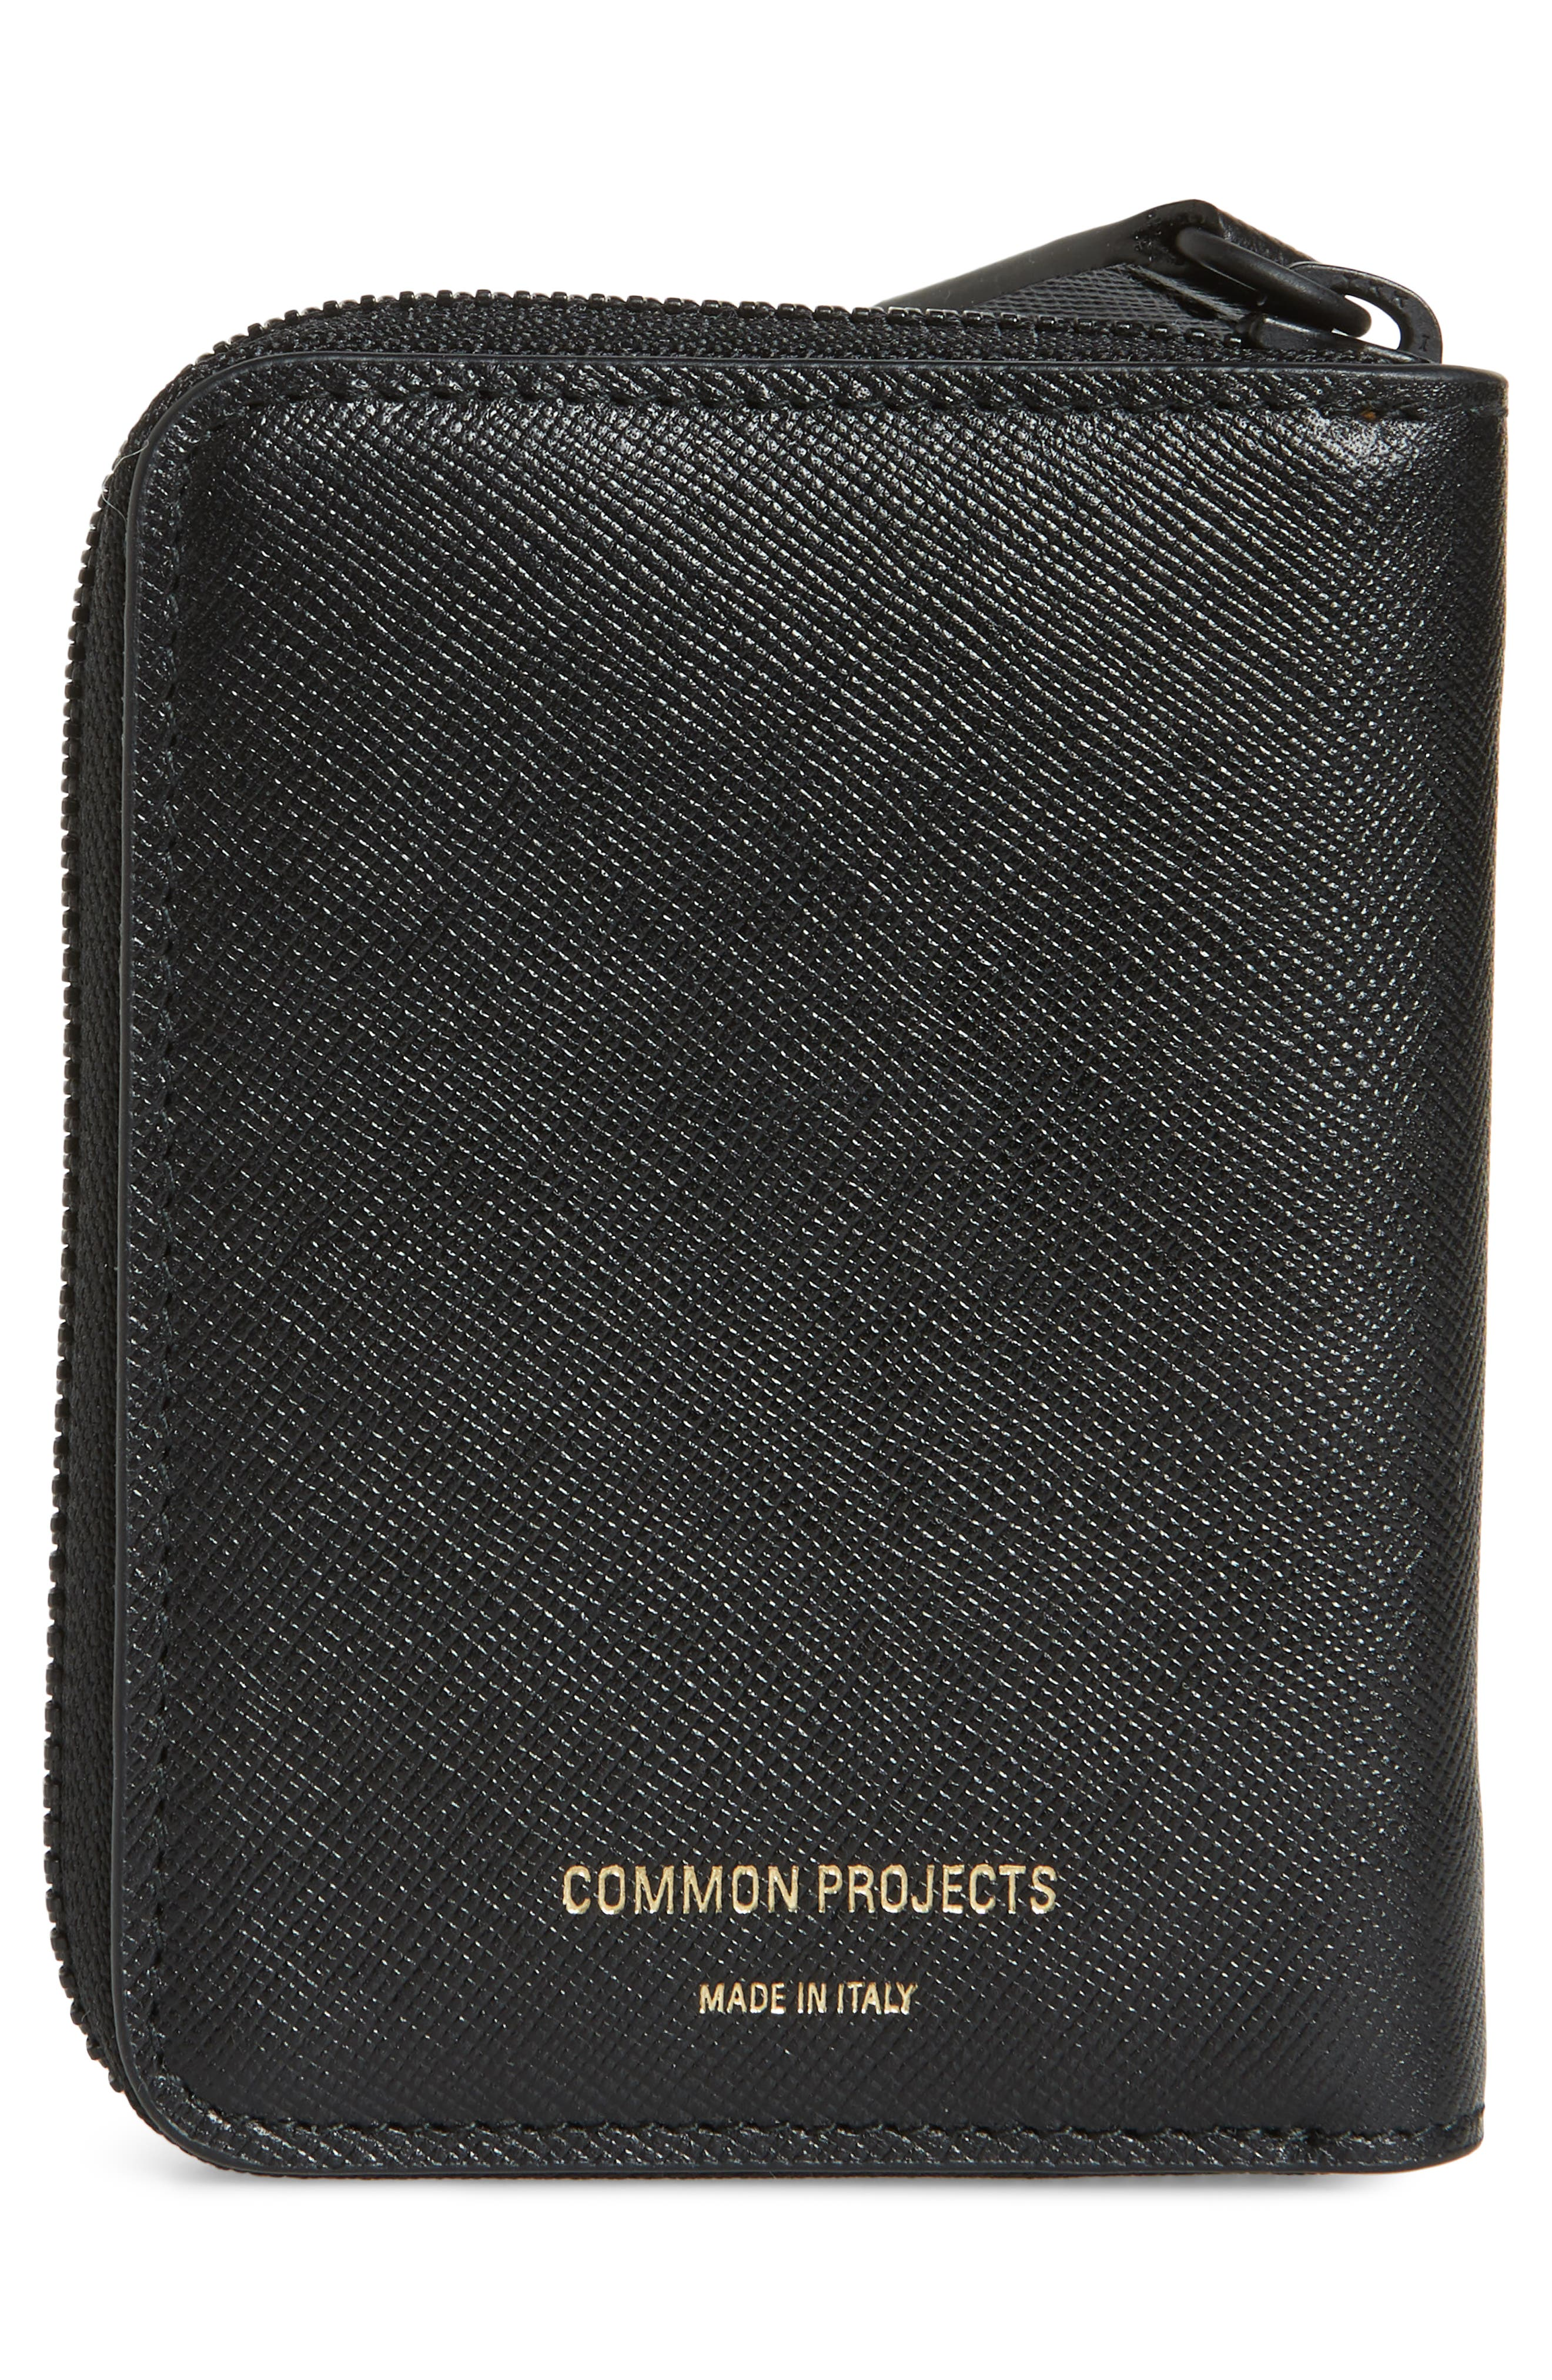 COMMON PROJECTS, Saffiano Zip Coin Case, Alternate thumbnail 3, color, 001